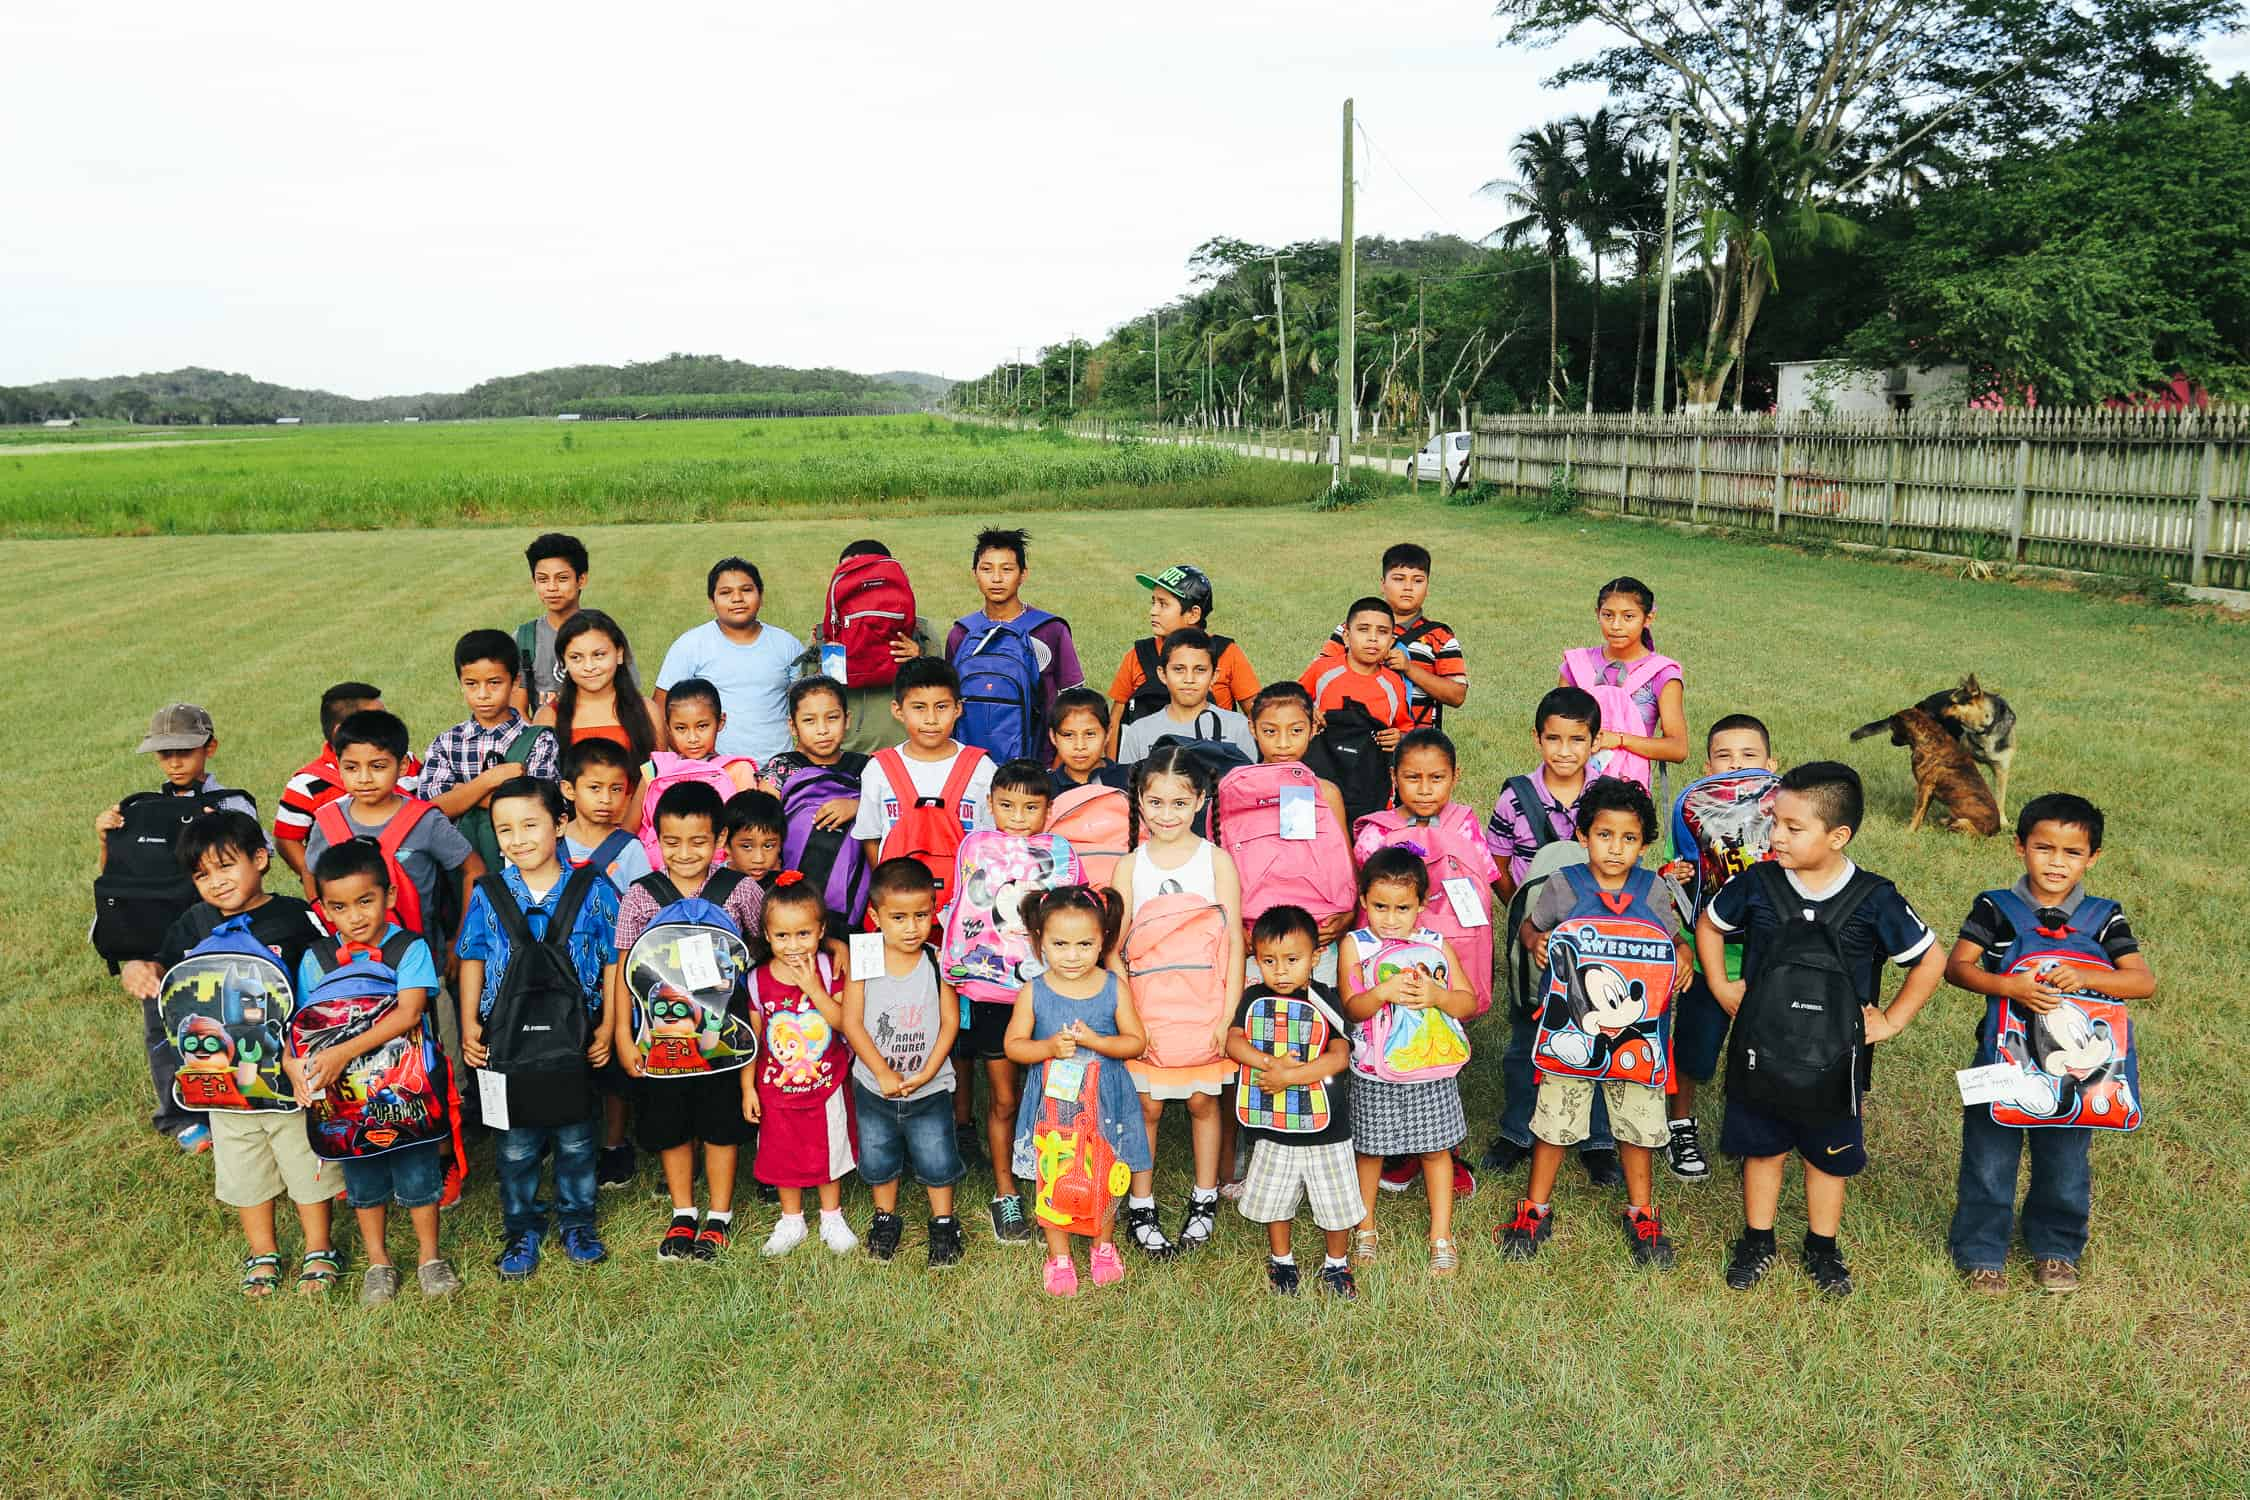 chaa creek corozalito funday group photo